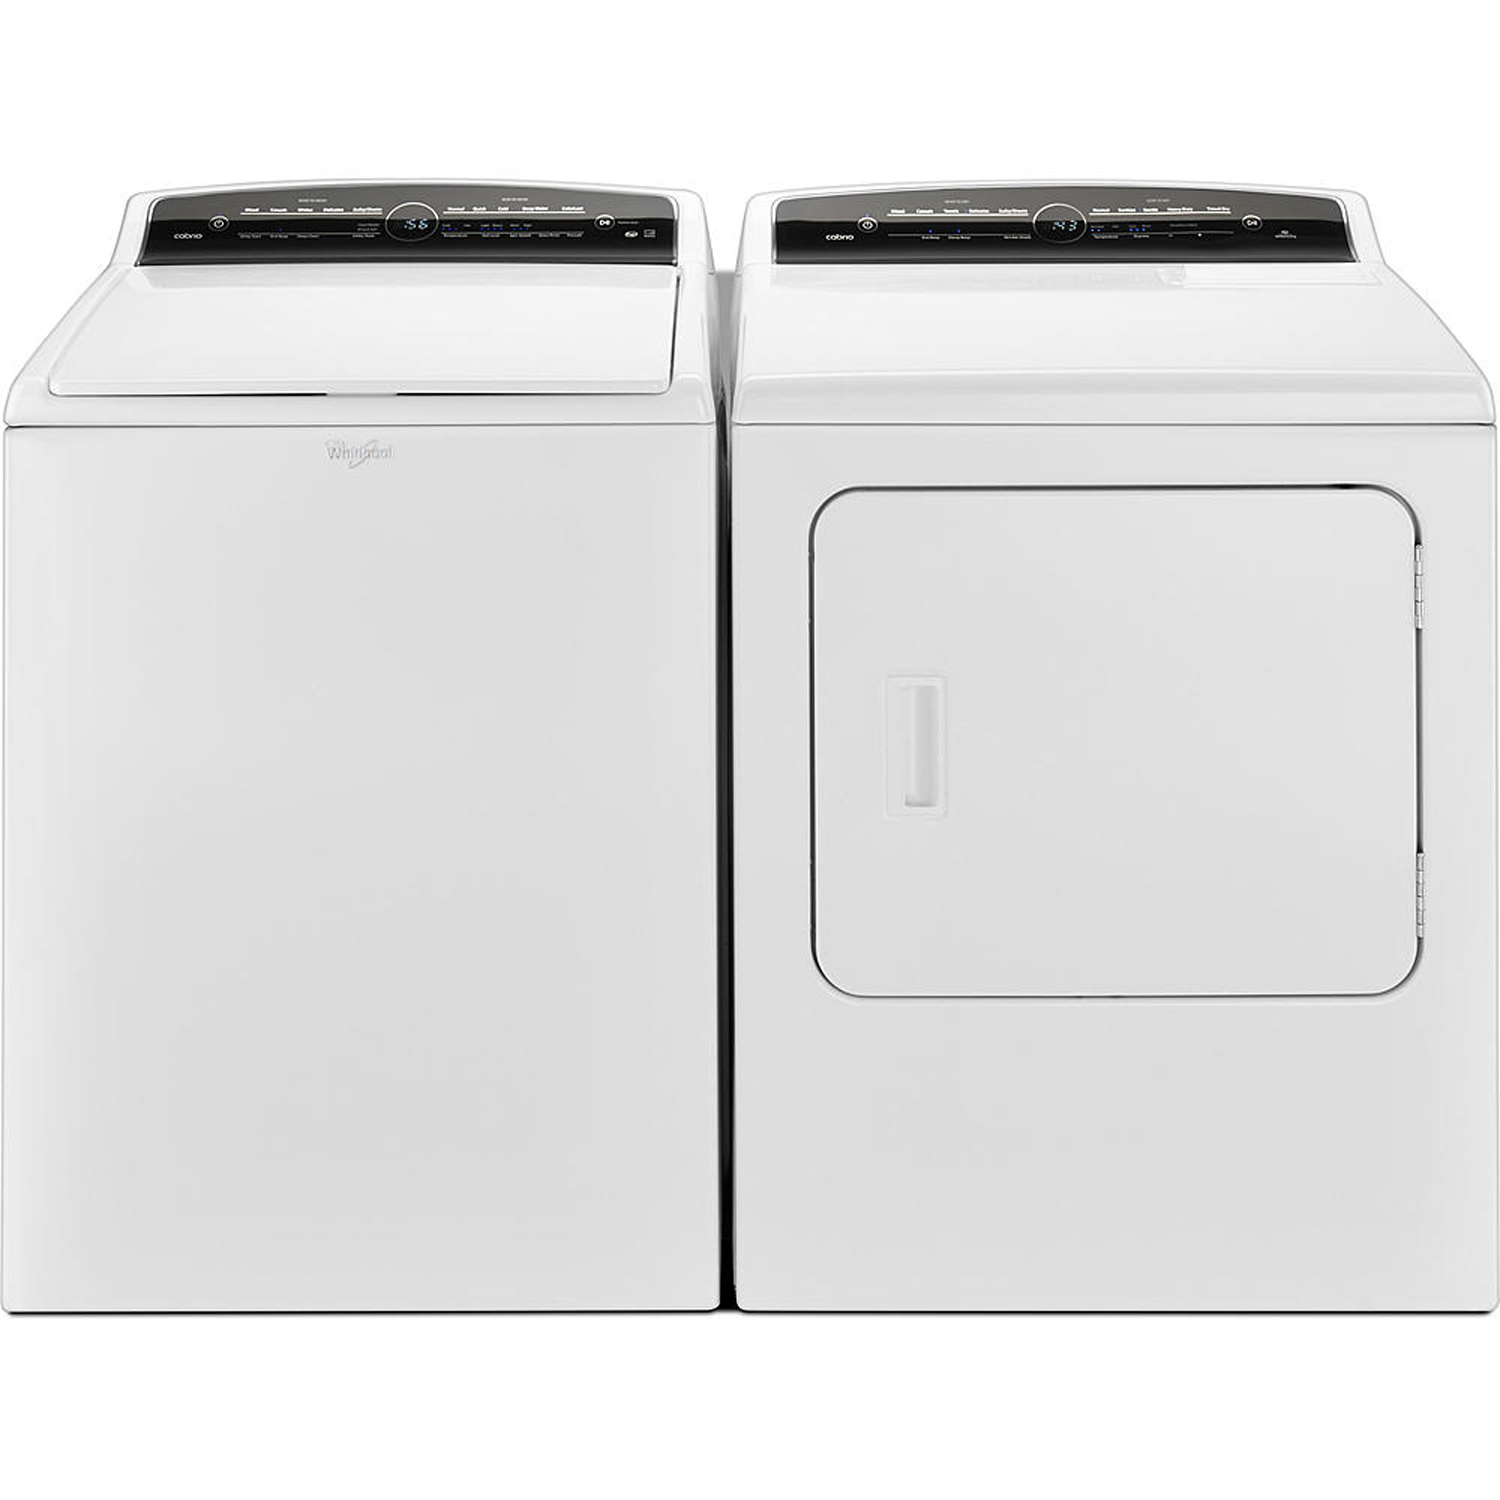 4.8 cu. ft Top Load Washer & 7.0 cu. ft. High-Efficiency Electric Dryer -